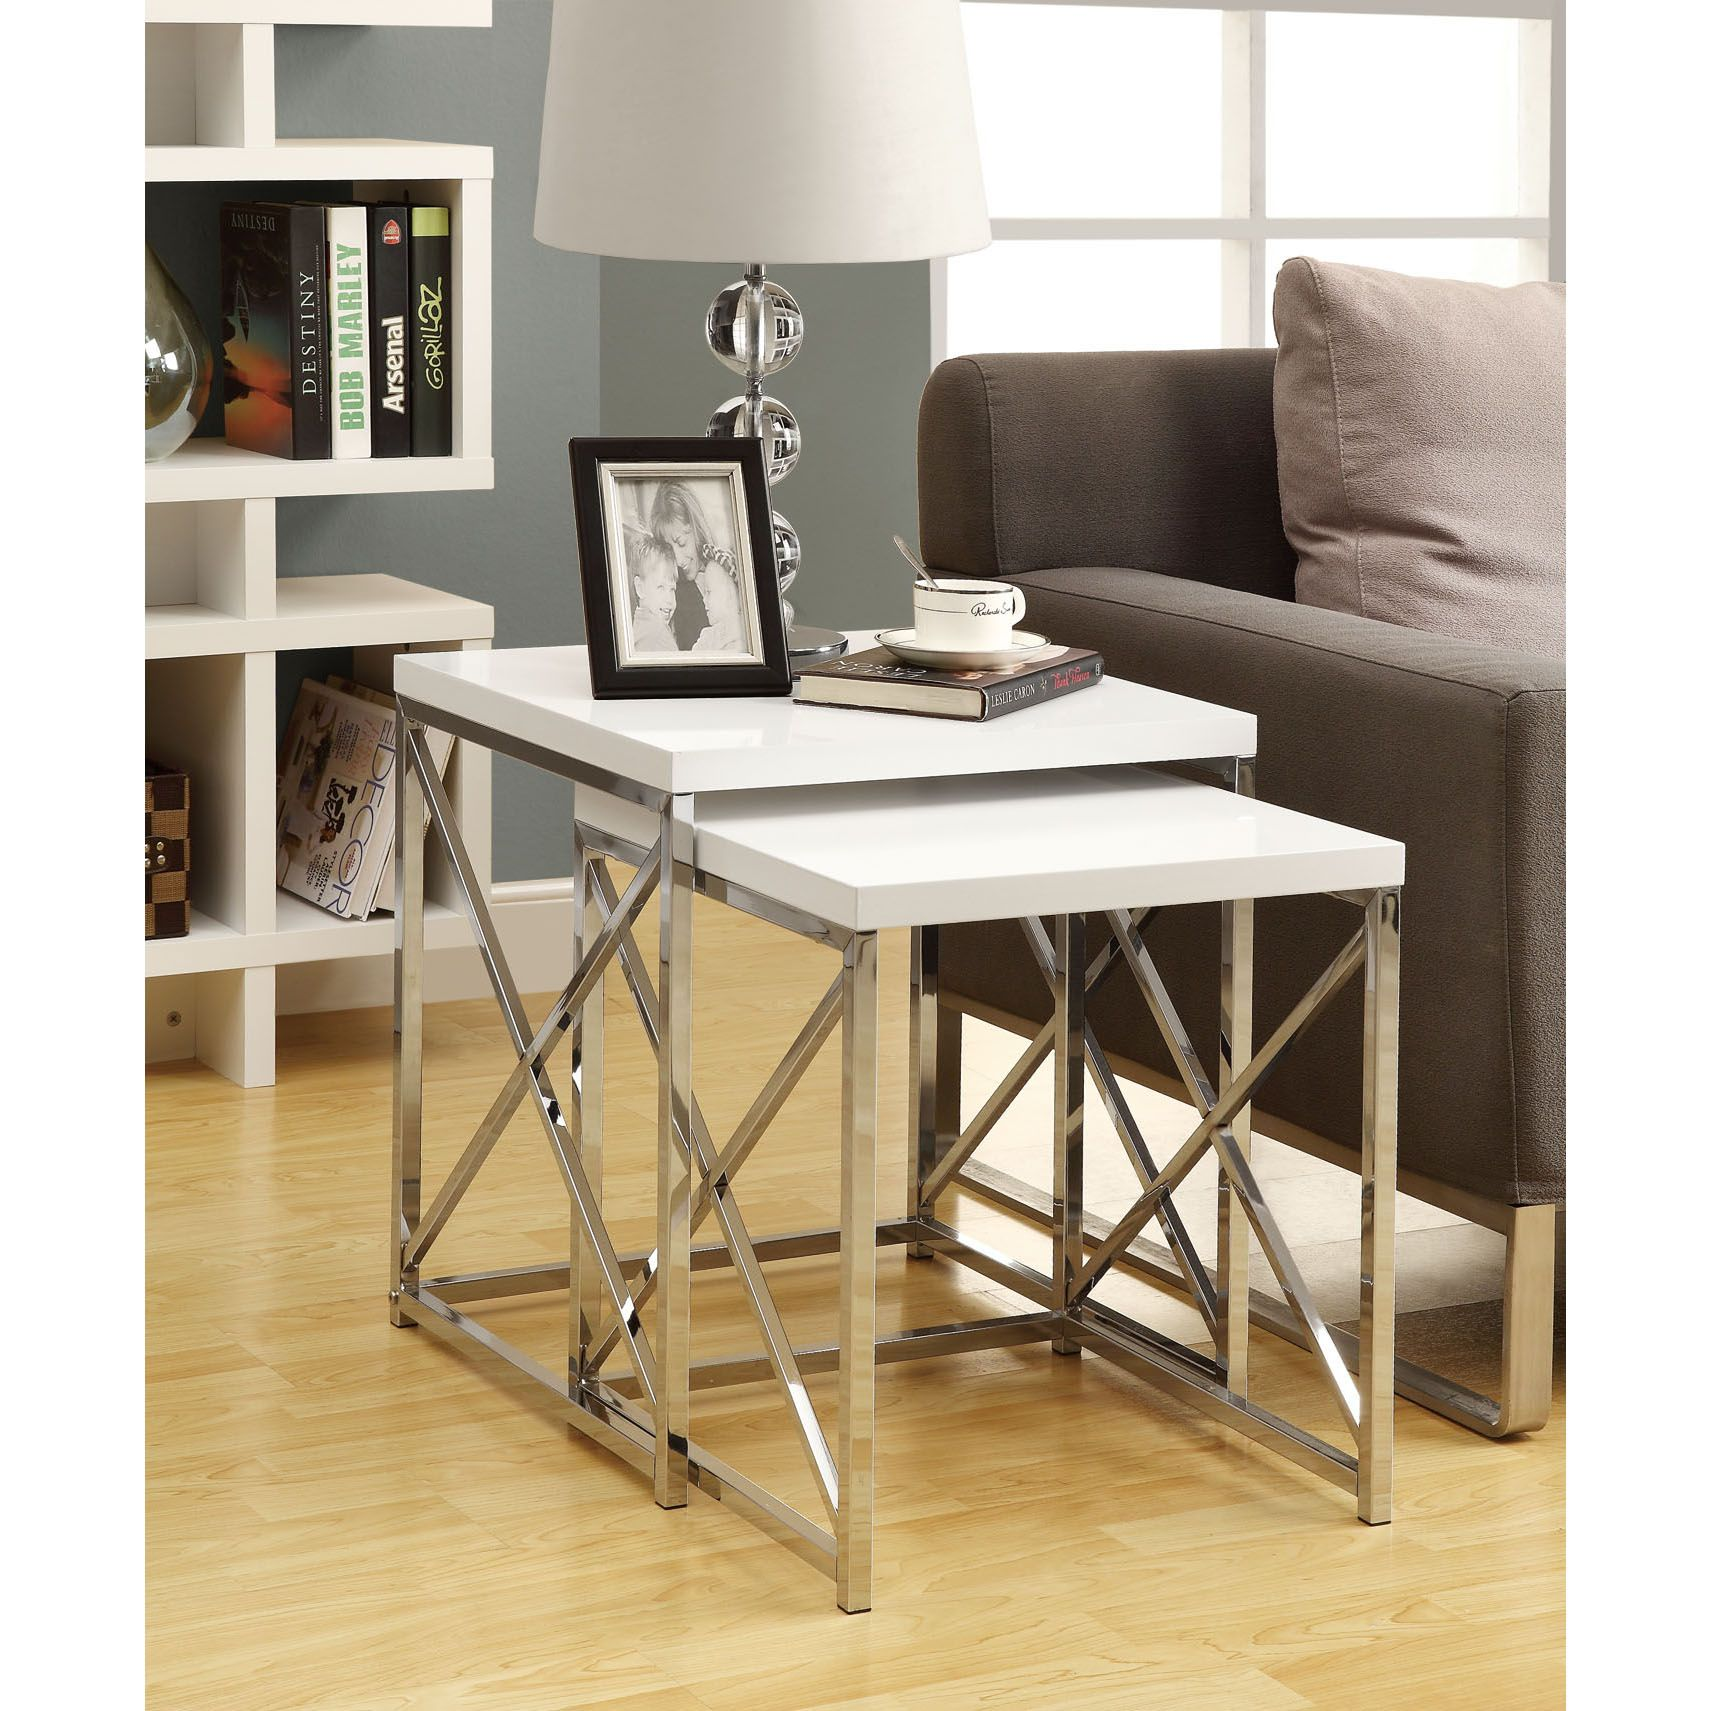 Marvelous Use This Set Of 2 Gloss White/chrome Metal Nesting Tables In A Loft Or Part 28